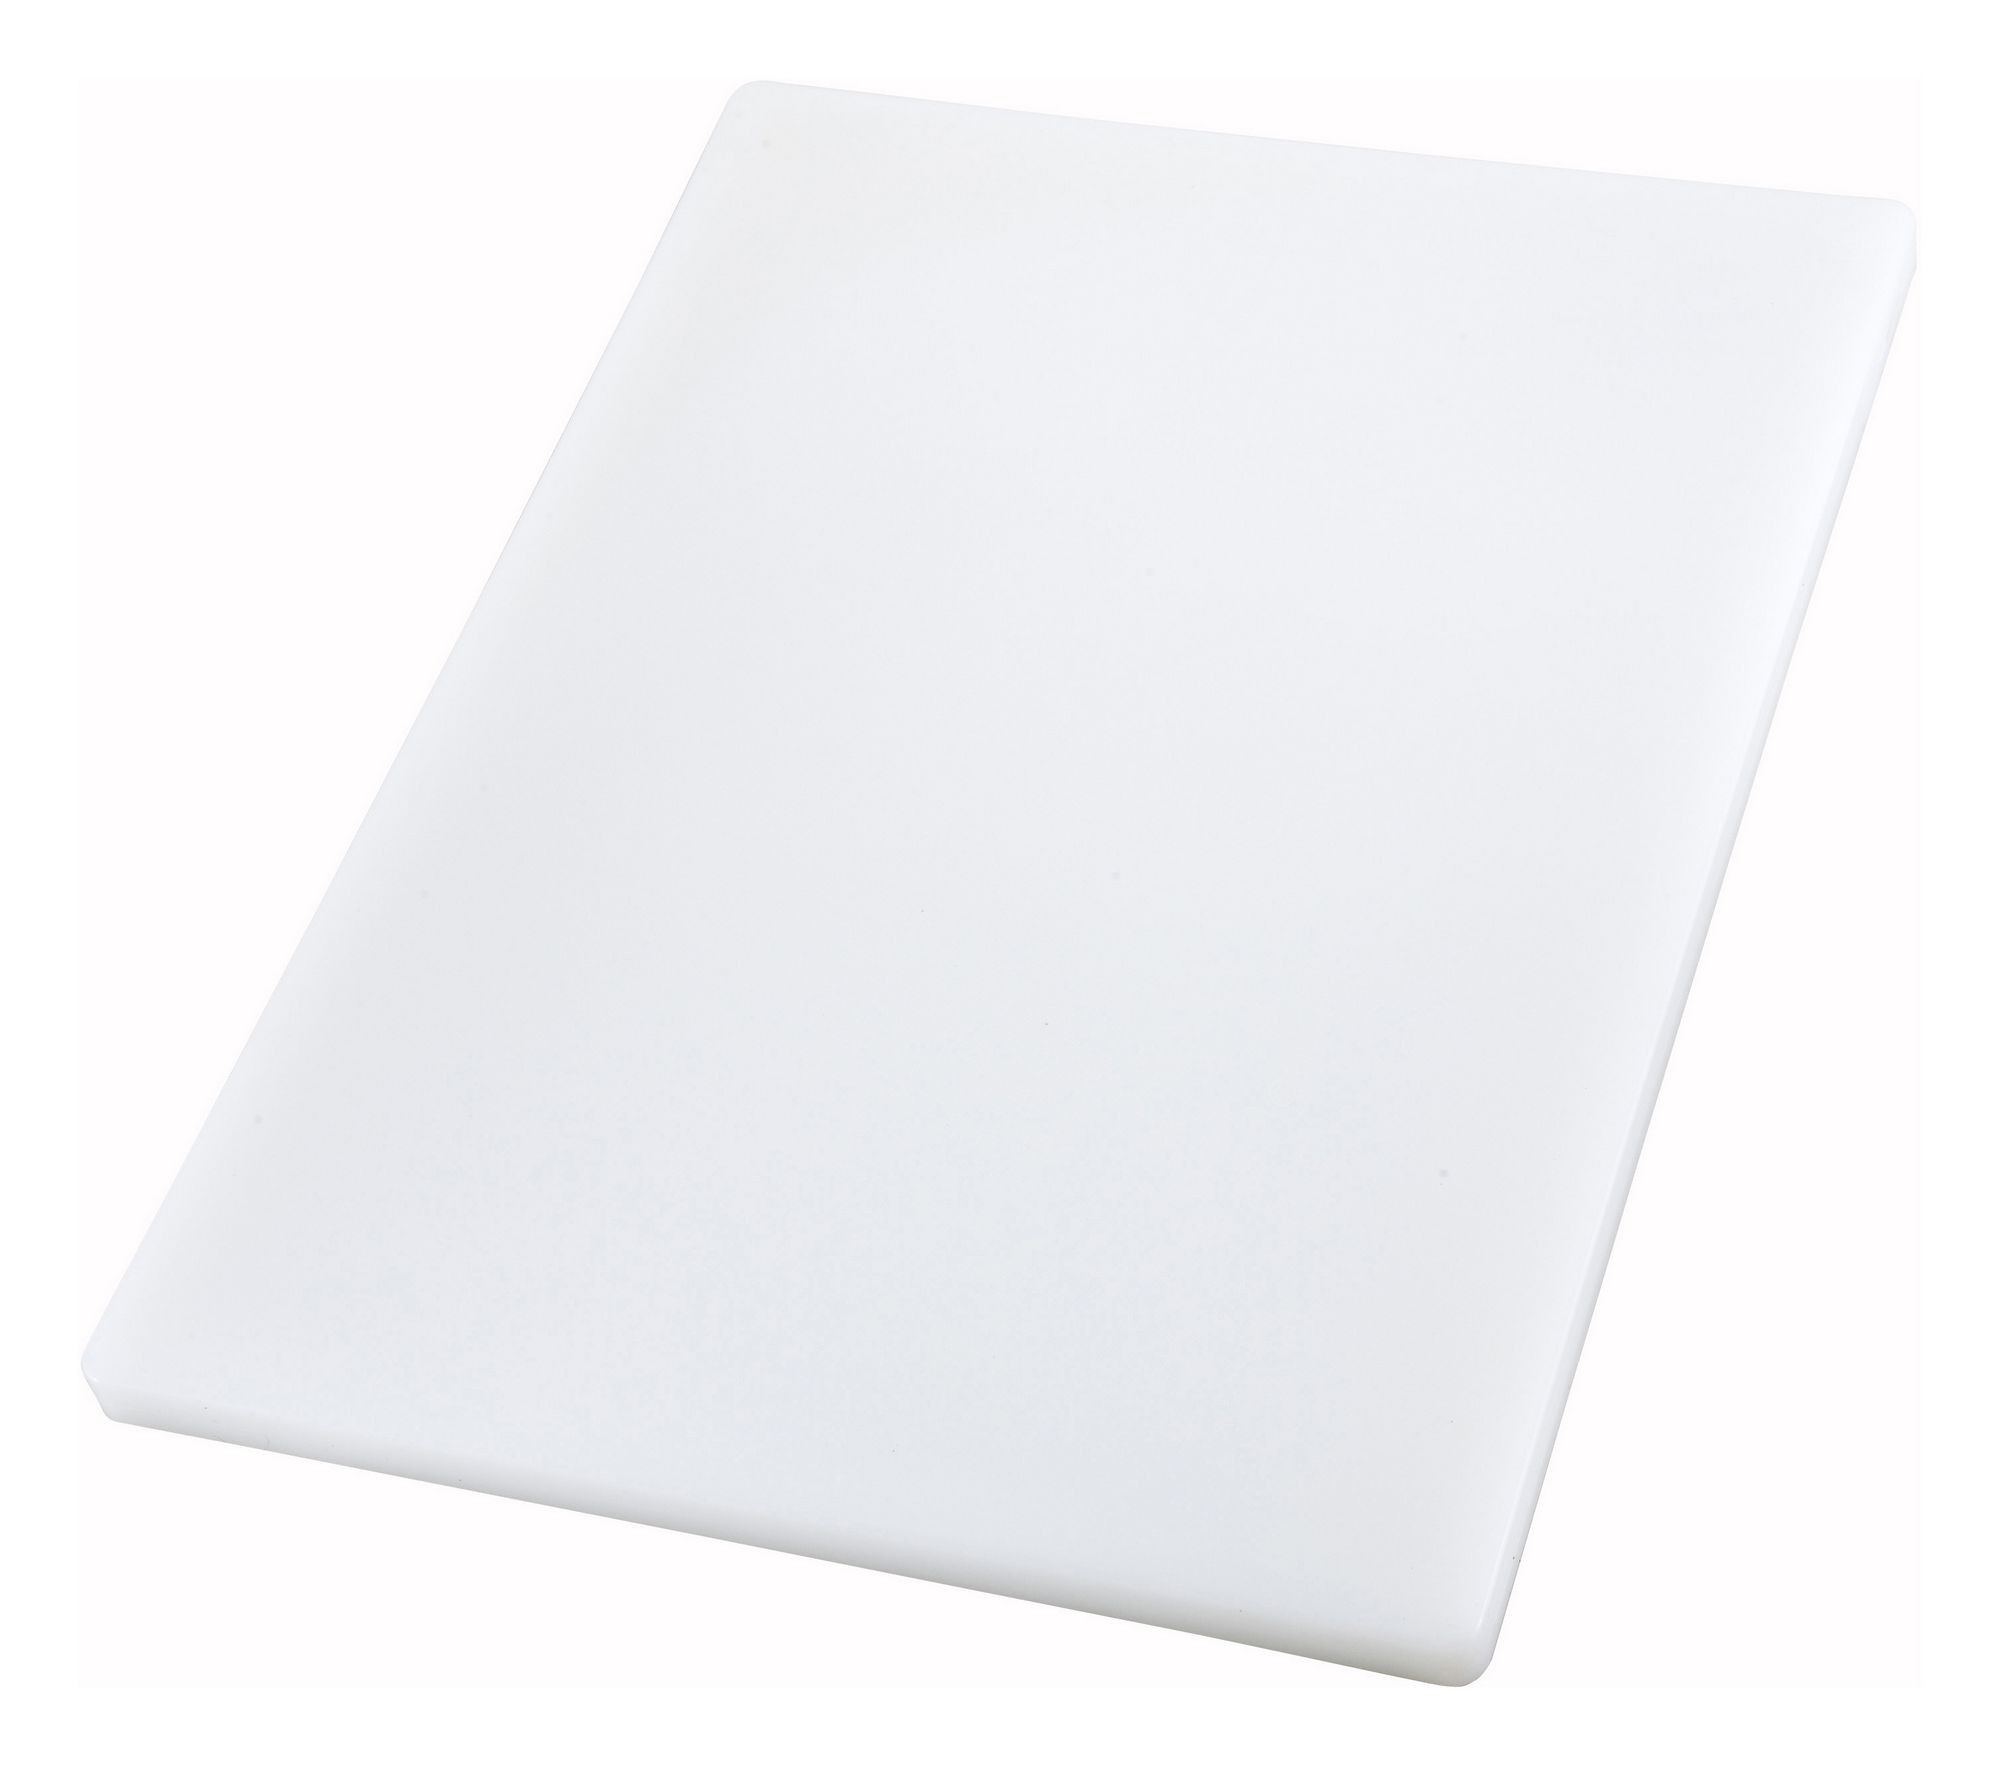 Thick White NSF Cutting Board - 15 X 20 X 1